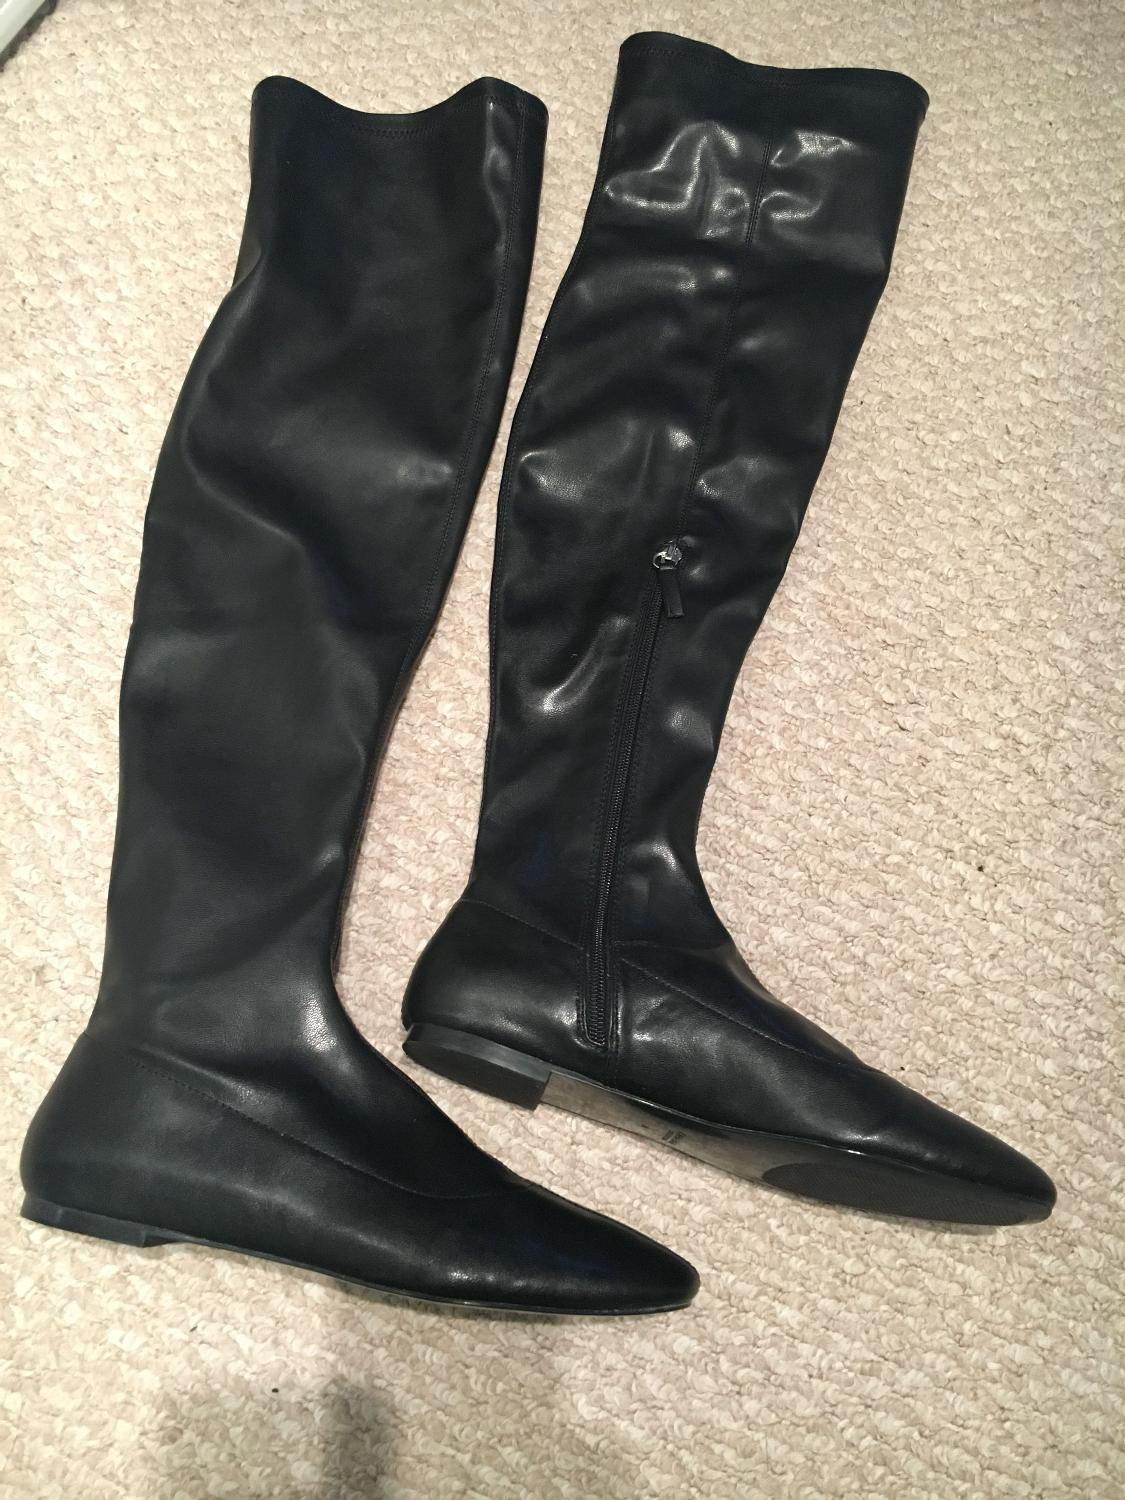 73eae8eacaf Zara over the knee boots size 7